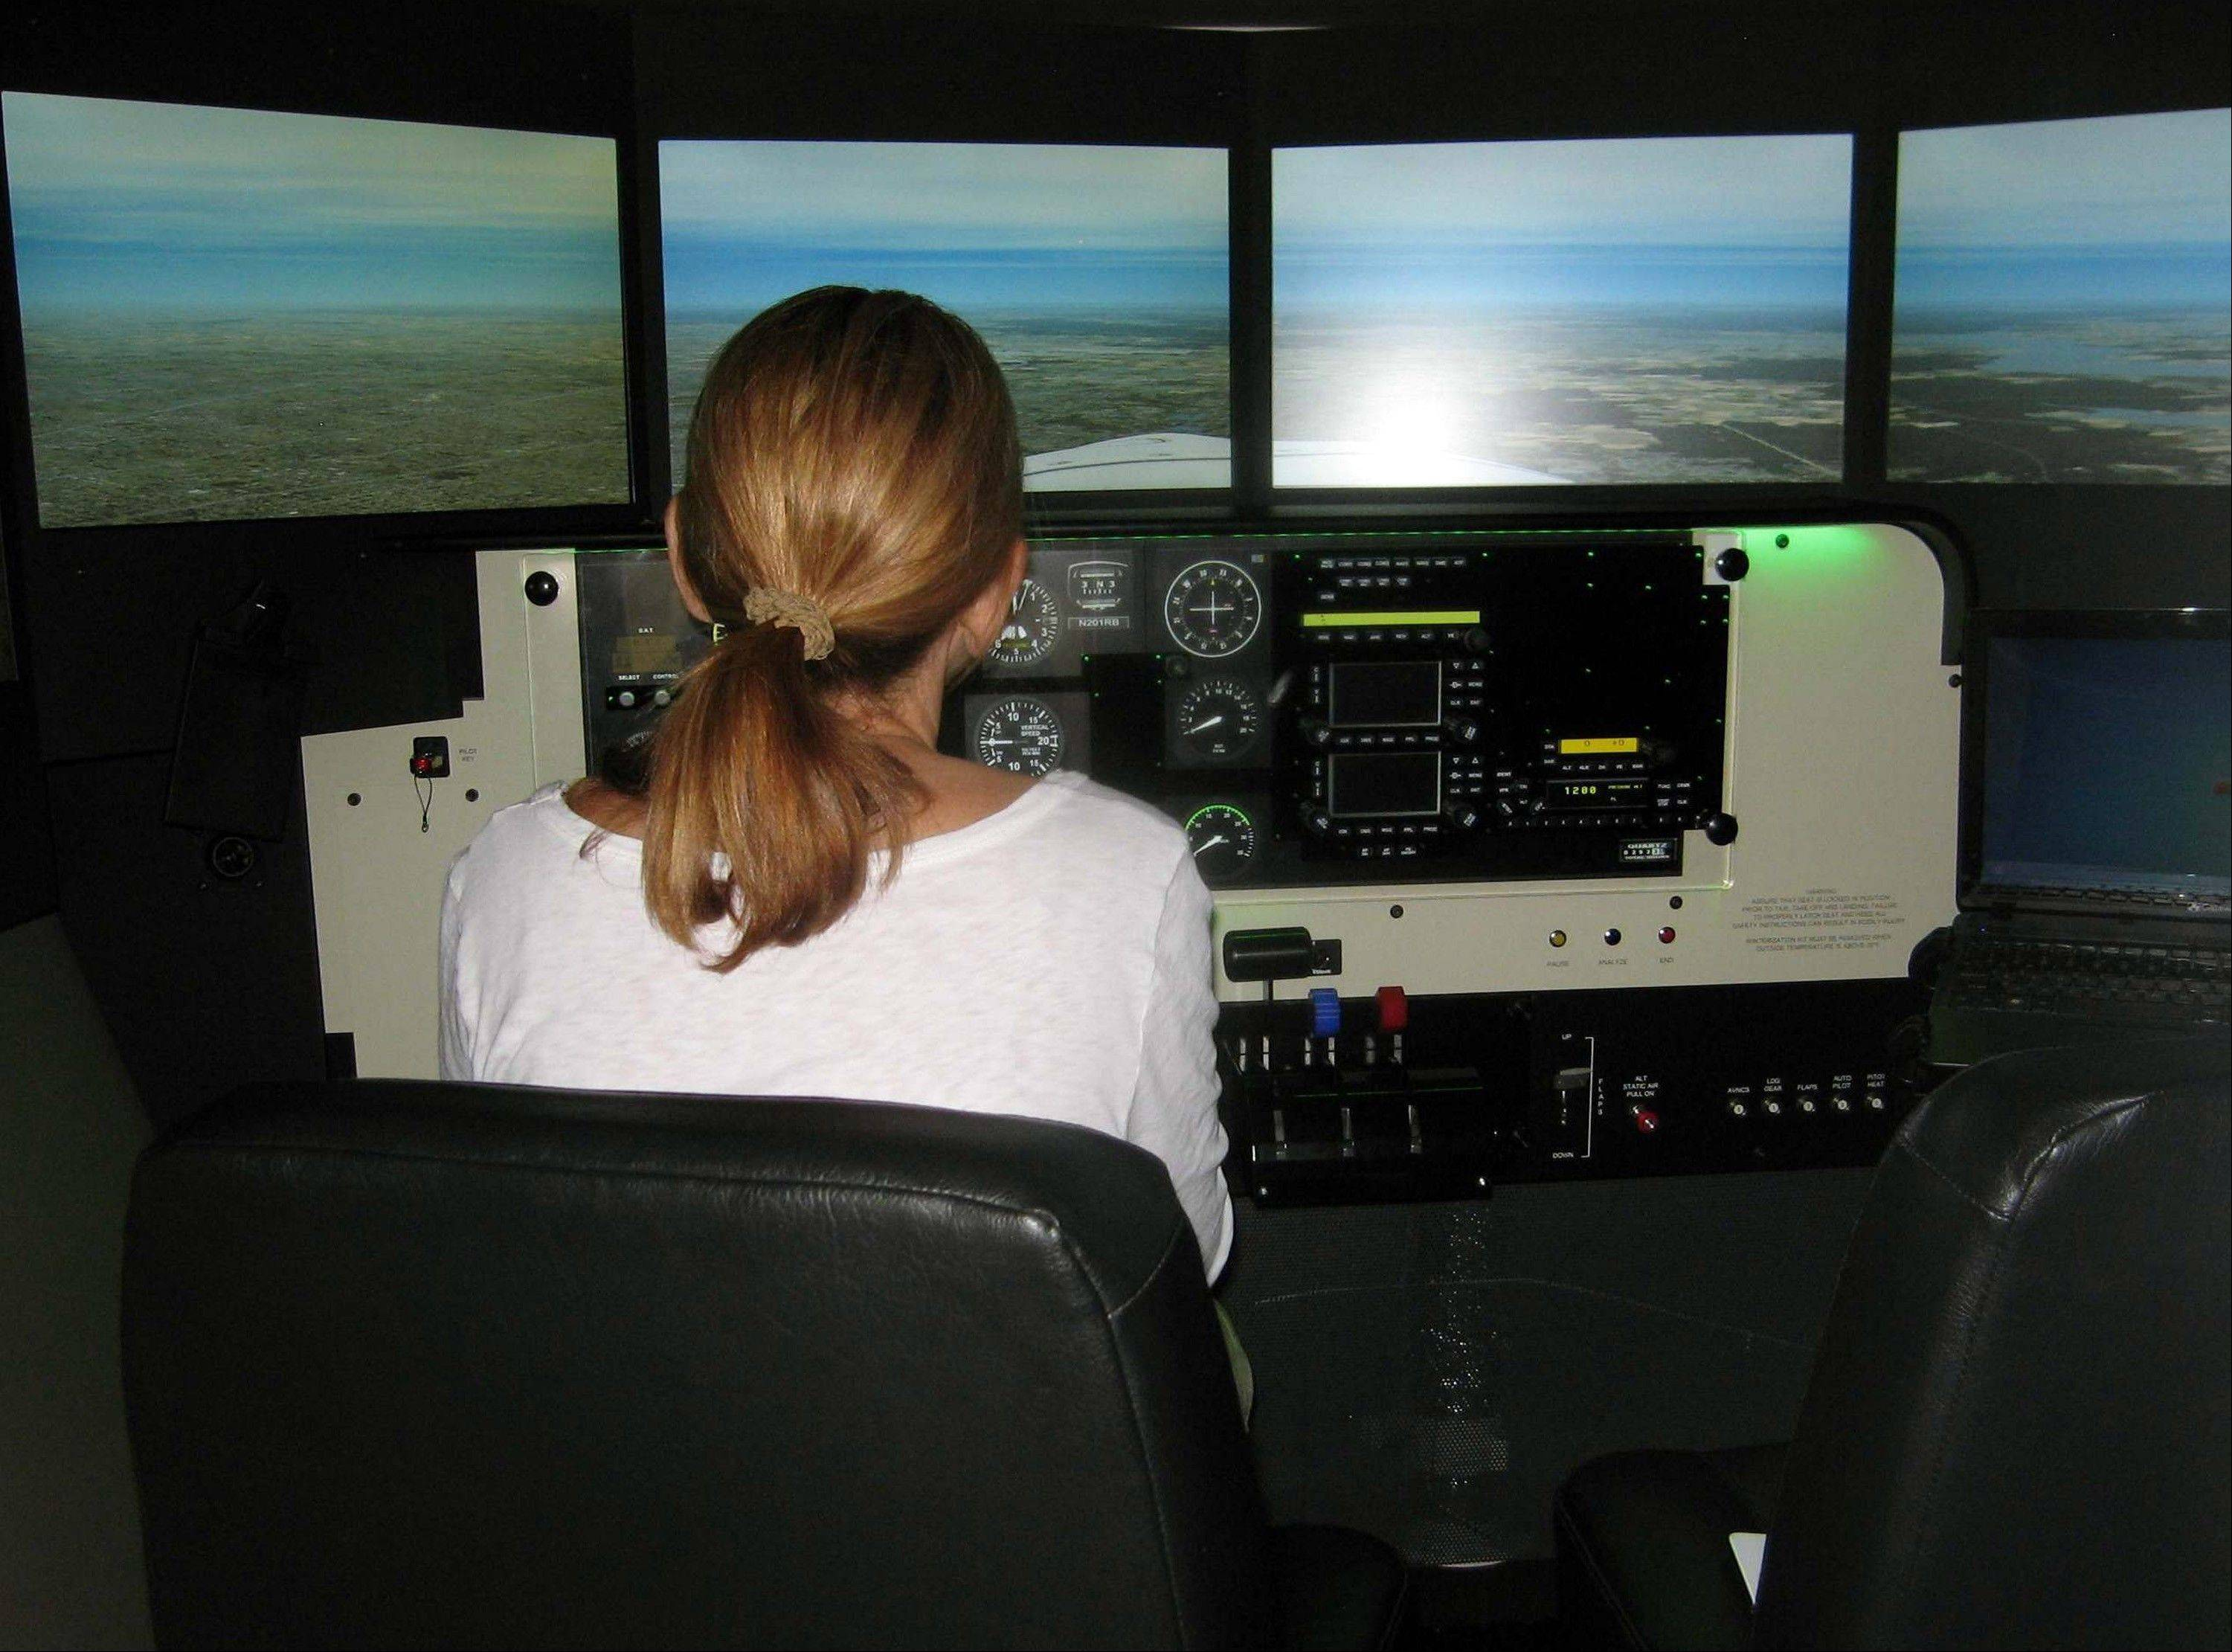 The Menninger Clinic in Houston uses flight simulators in conjunction with cognitive behavioral therapy to help patients overcome fear of flying.